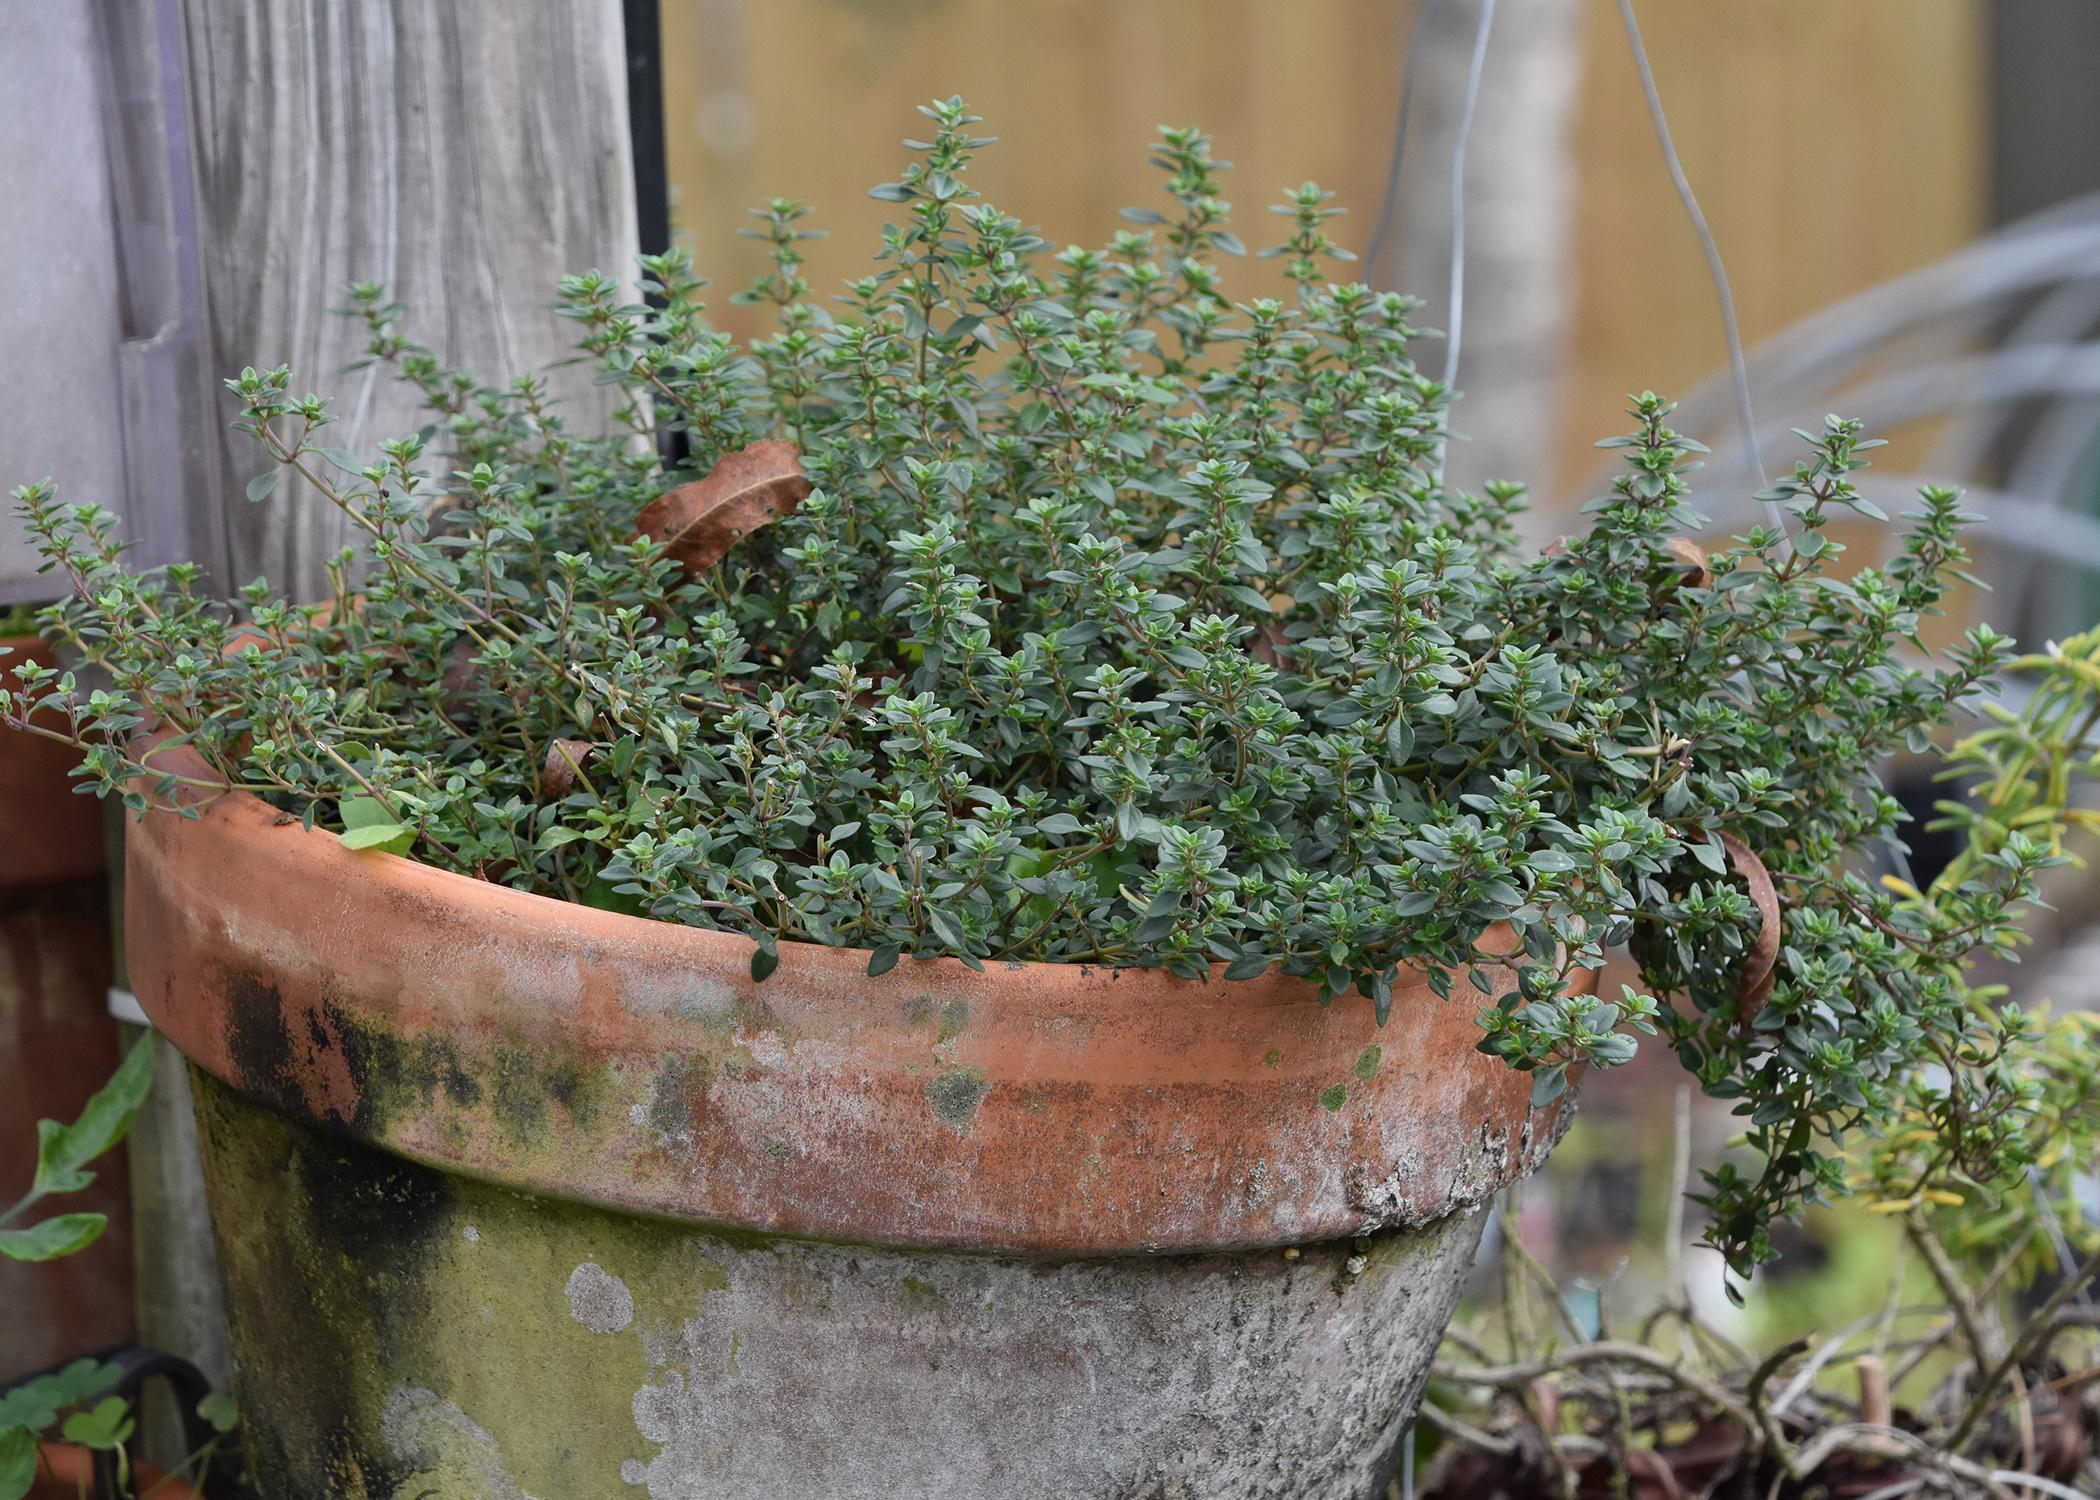 A low-growing plant with tiny leaves grows in a large pot.